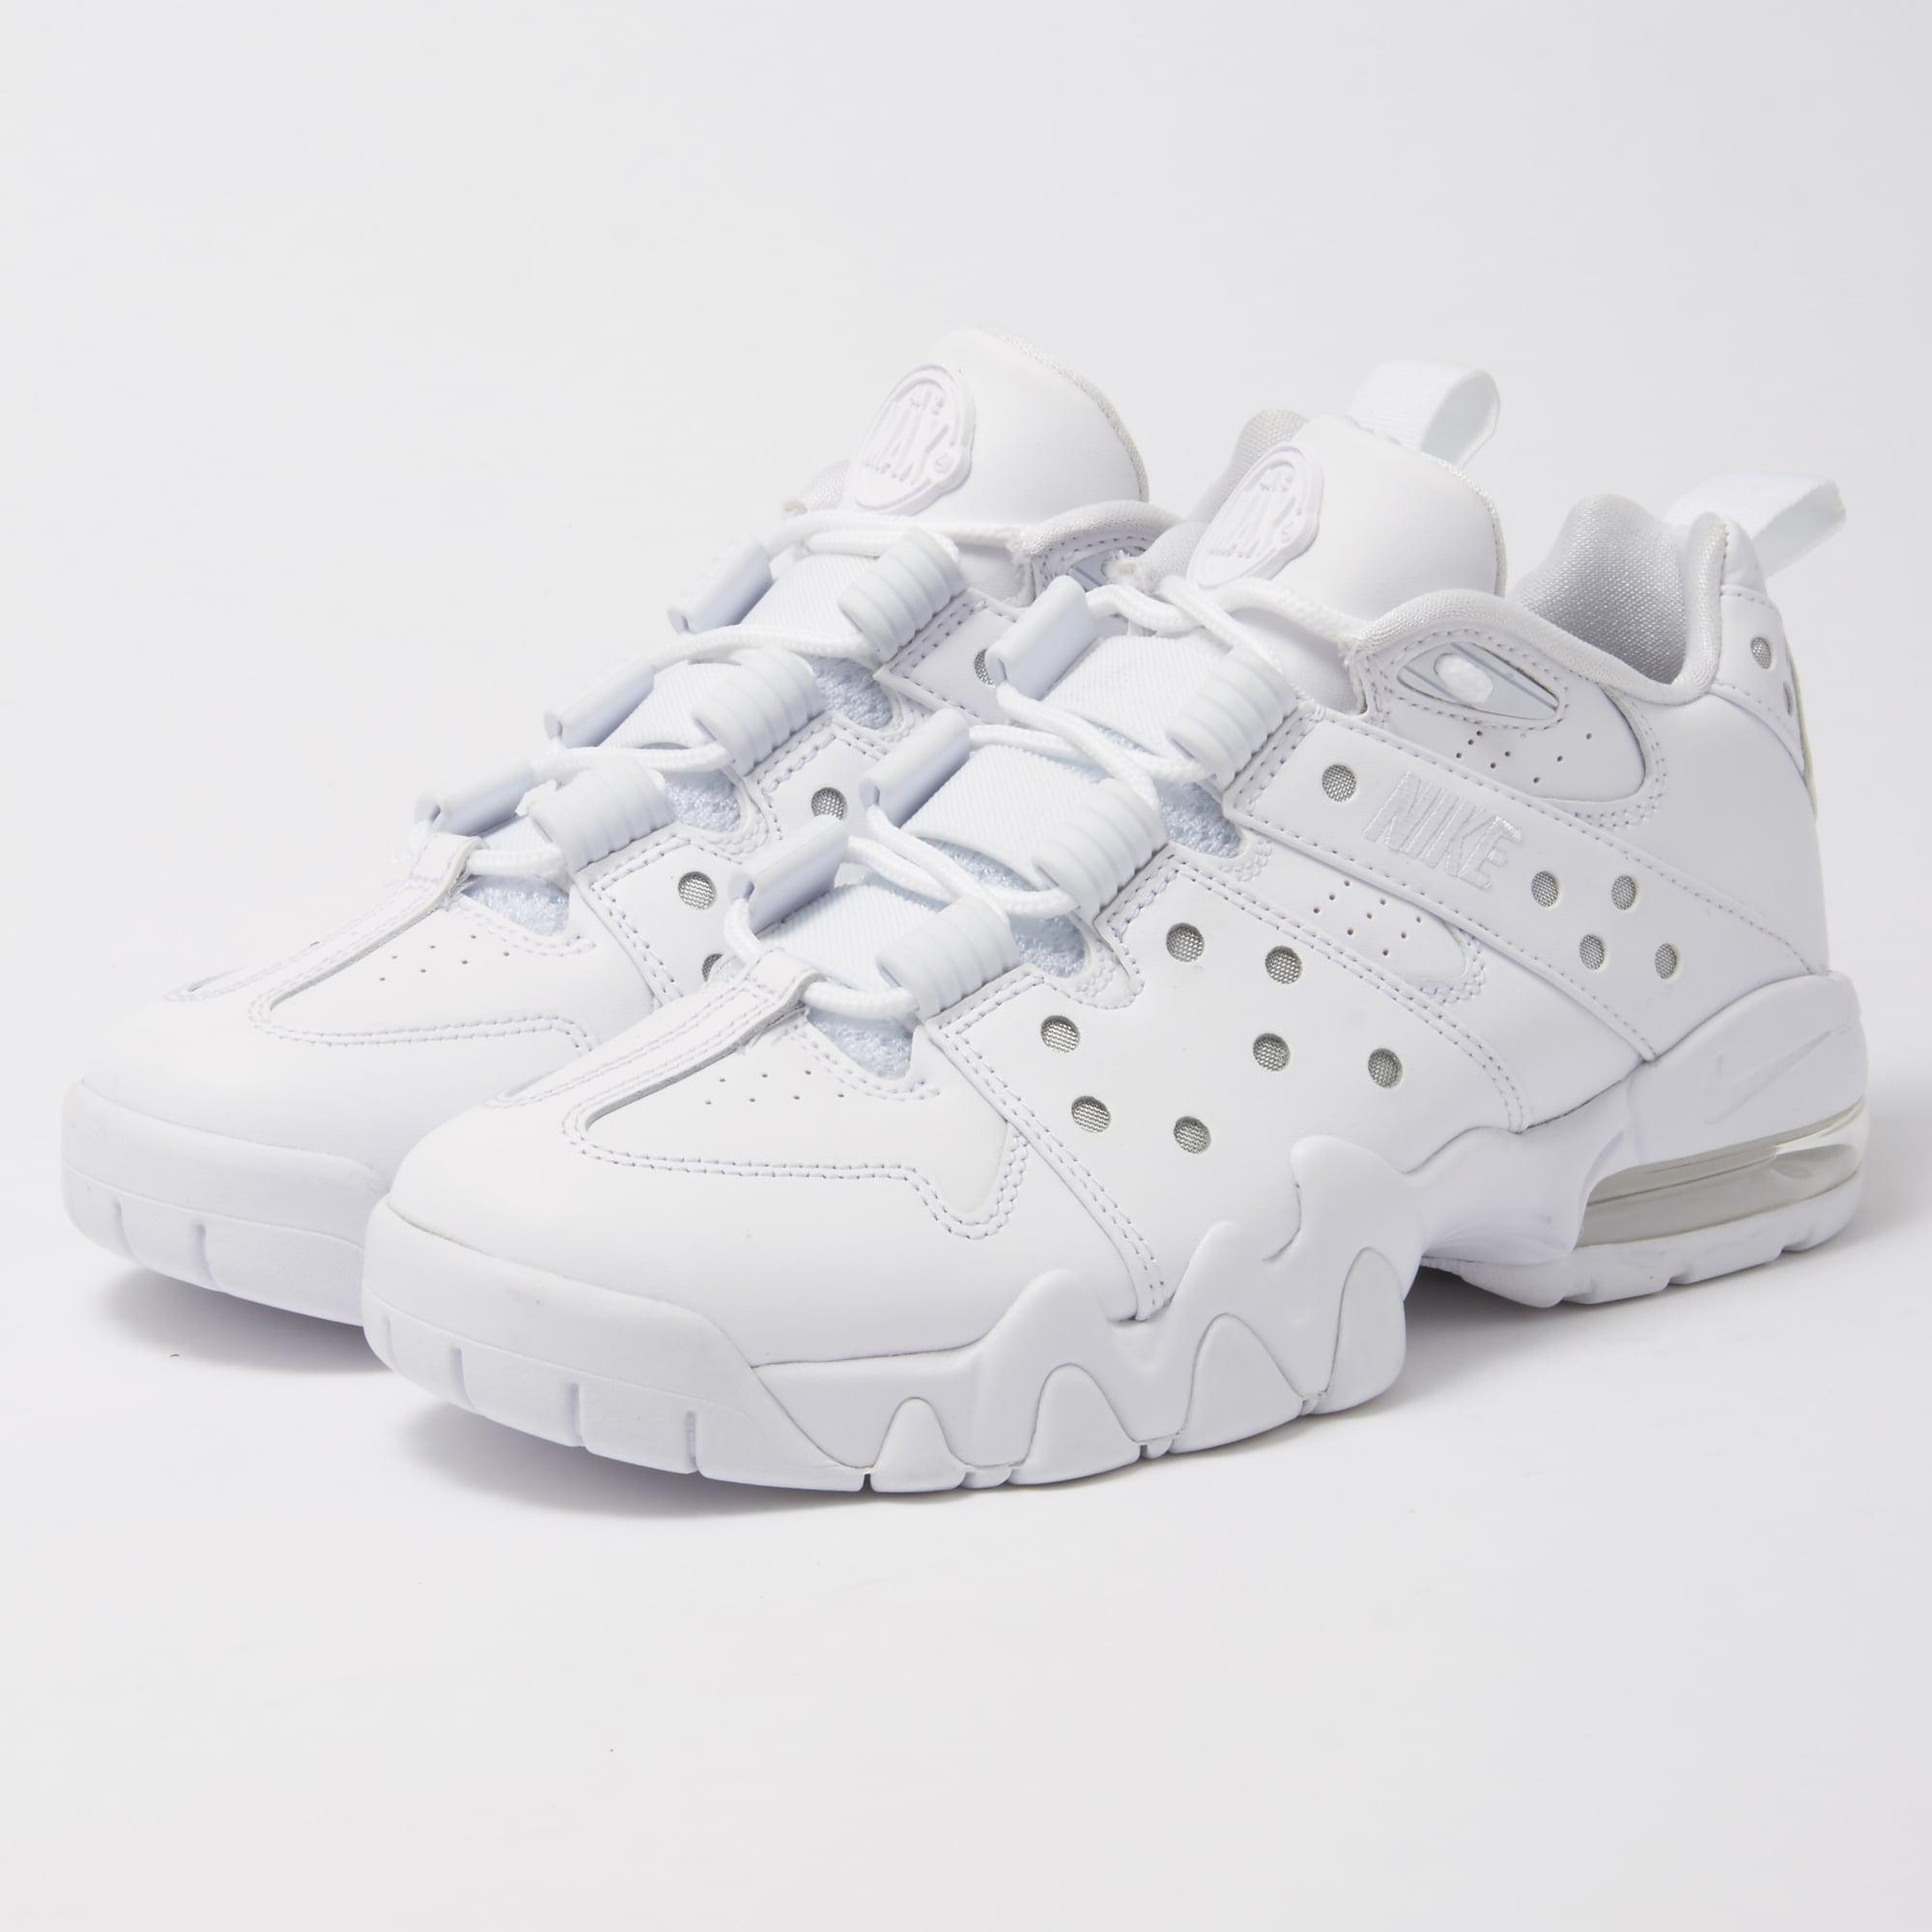 5d8d71abed Nike Air Max Cb 94 Low in White for Men - Lyst